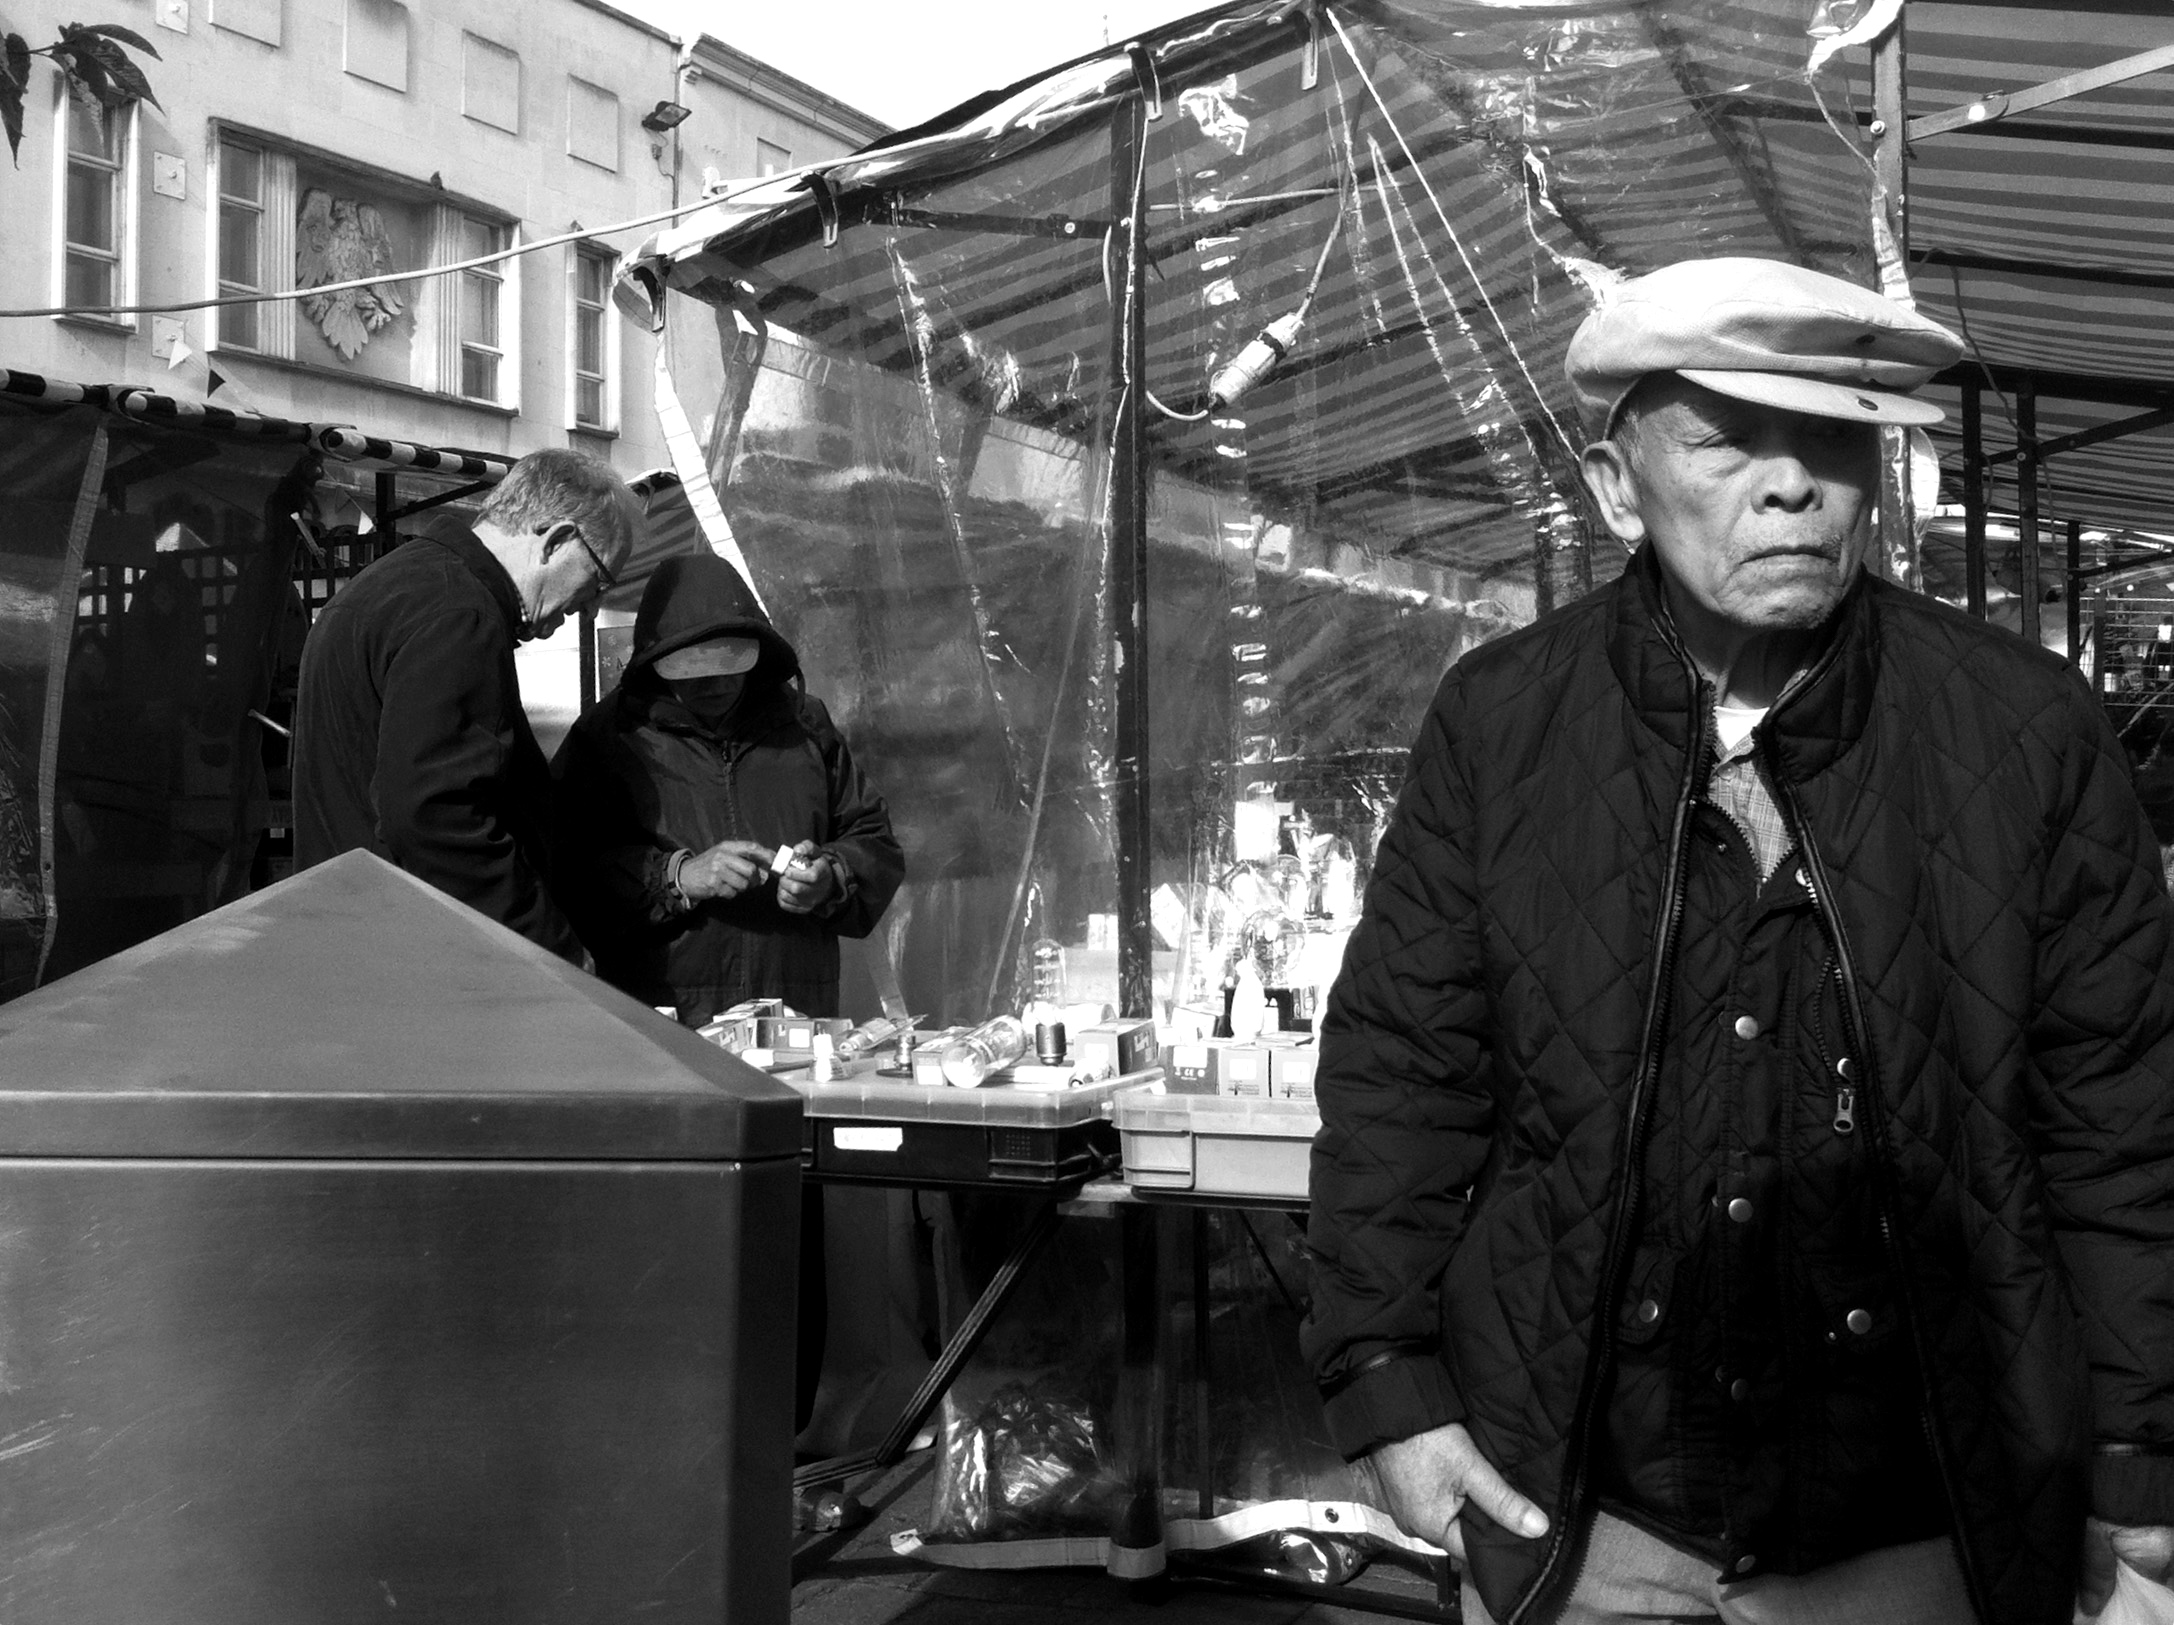 street photography Loughborough Market Paul Conneally 2015